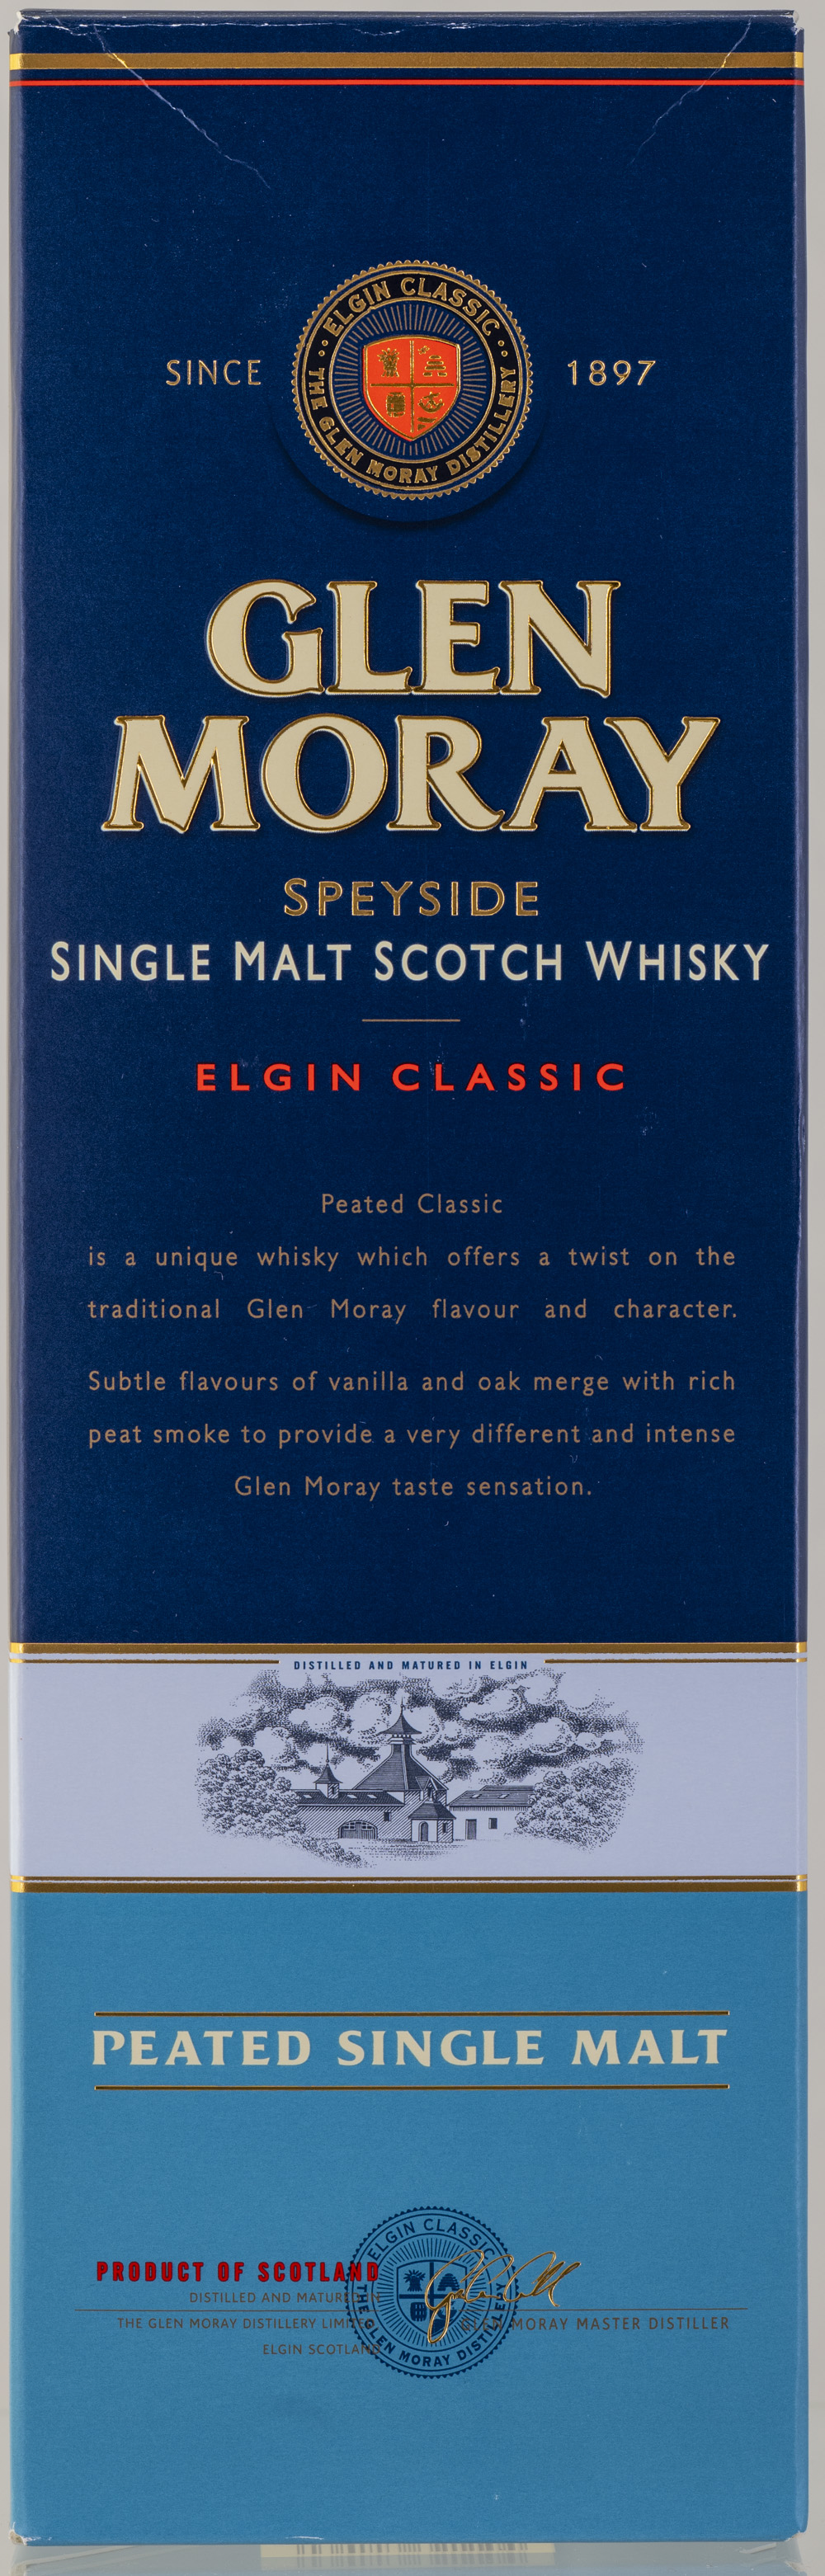 Billede: PHC_2270 - Glen Moray - Elgin Classic Peated - box front.jpg